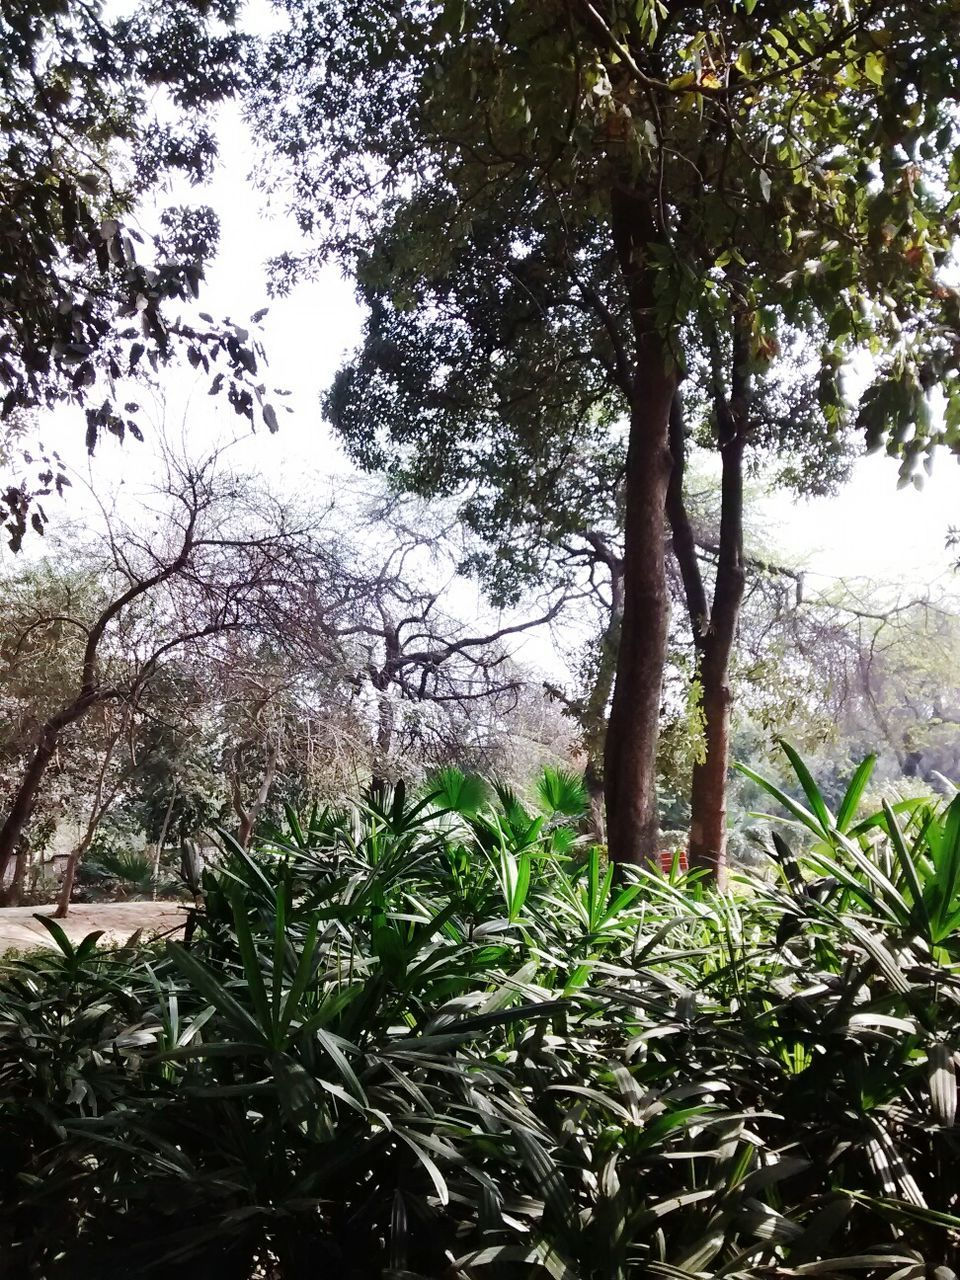 tree, growth, nature, green color, beauty in nature, branch, day, plant, outdoors, leaf, tranquility, no people, tranquil scene, scenics, tree trunk, grass, sky, freshness